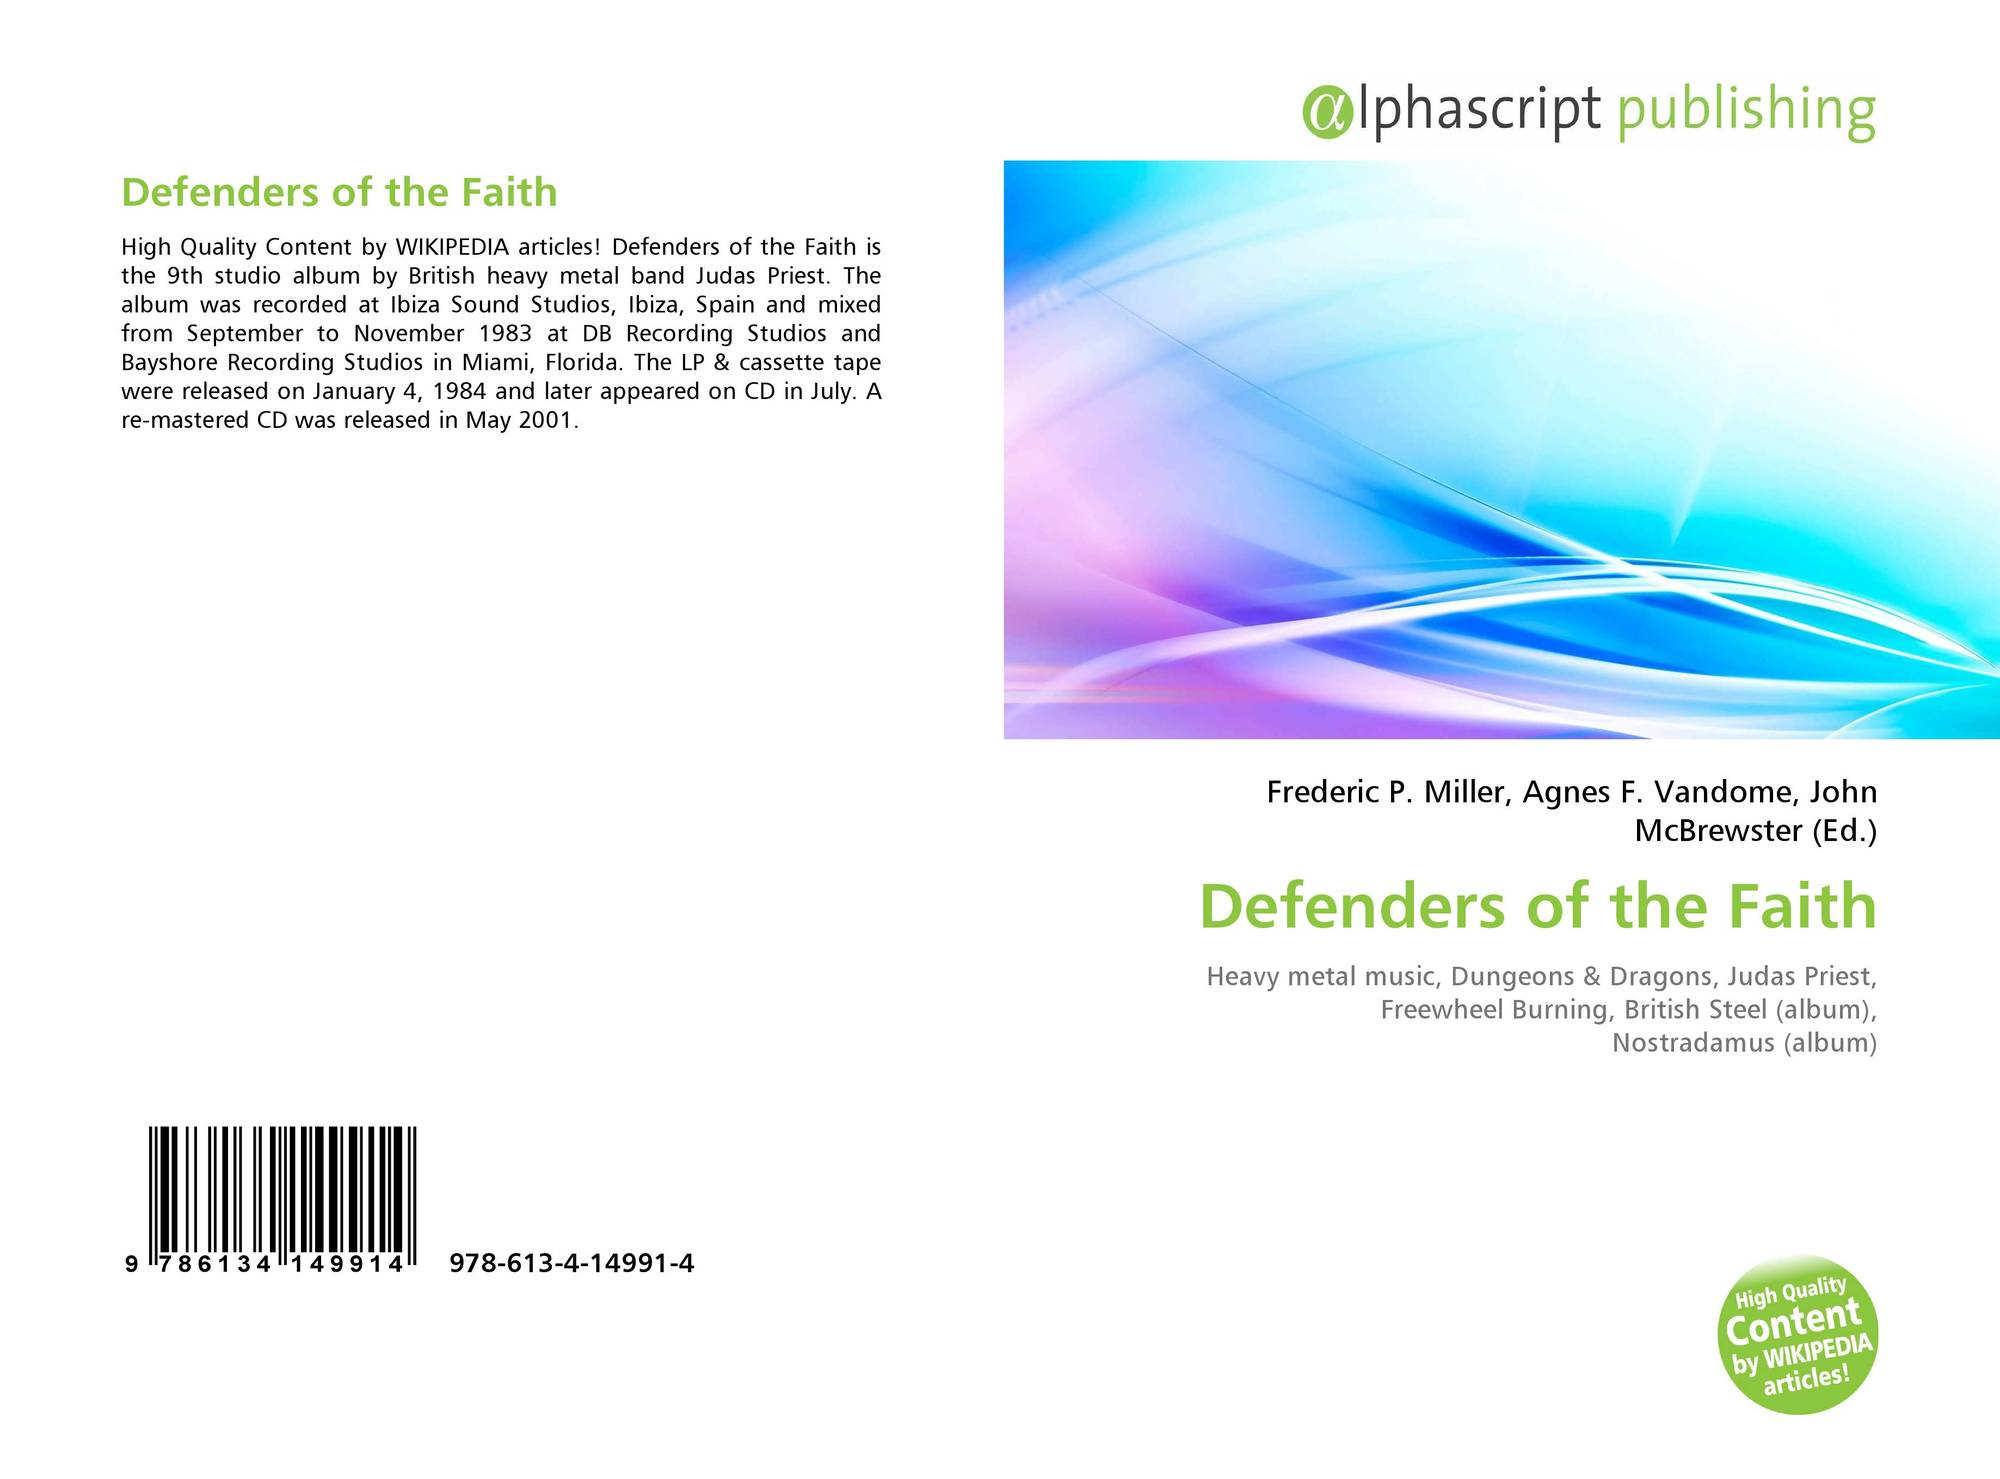 Defenders of the Faith, 978-613-4-14991-4, 6134149918 ,9786134149914